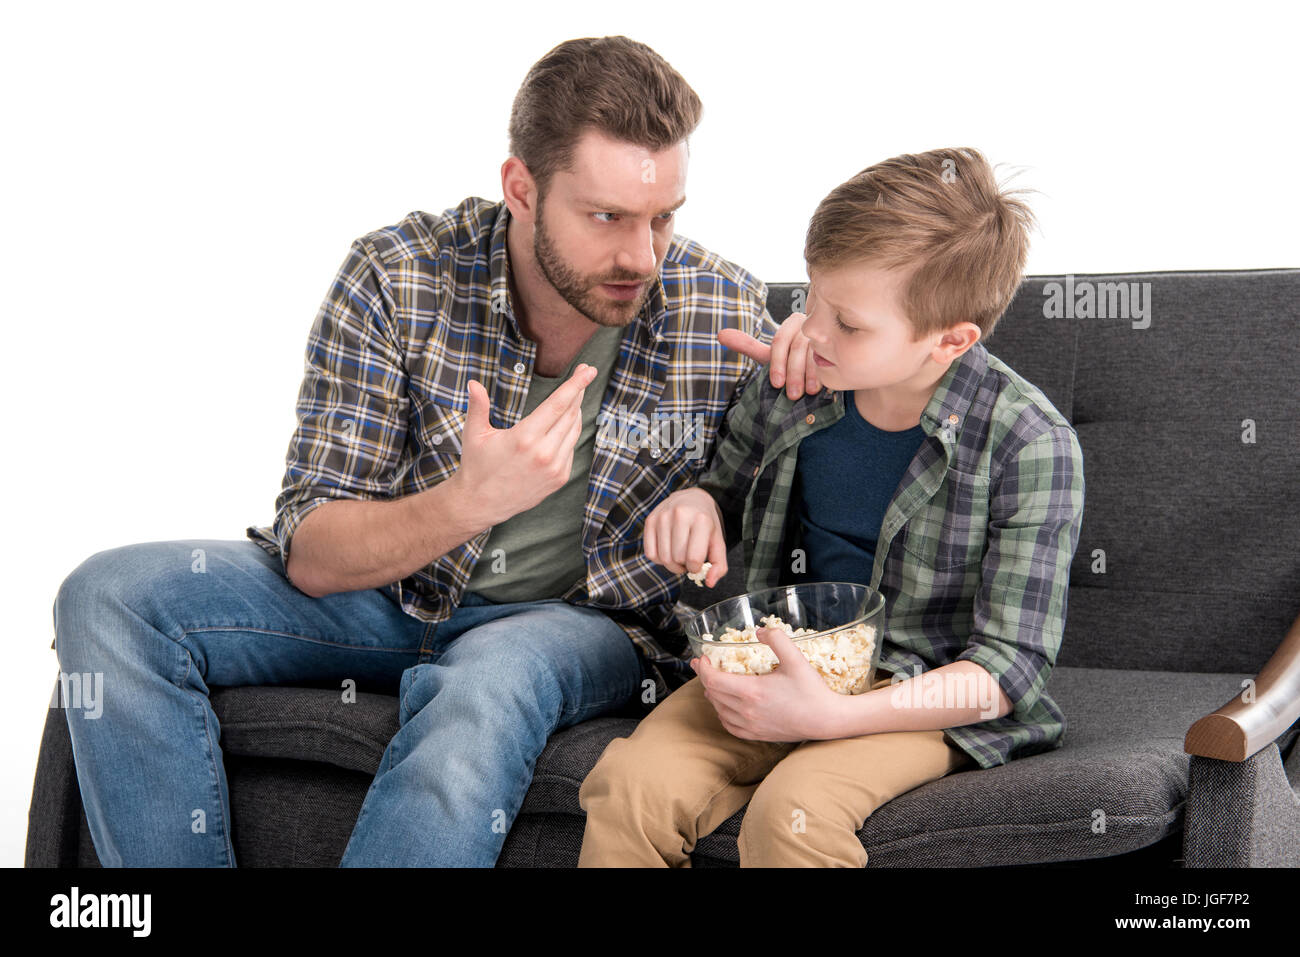 Father talking with son sitting on sofa and eating popcorn from bowl, family problems concept - Stock Image